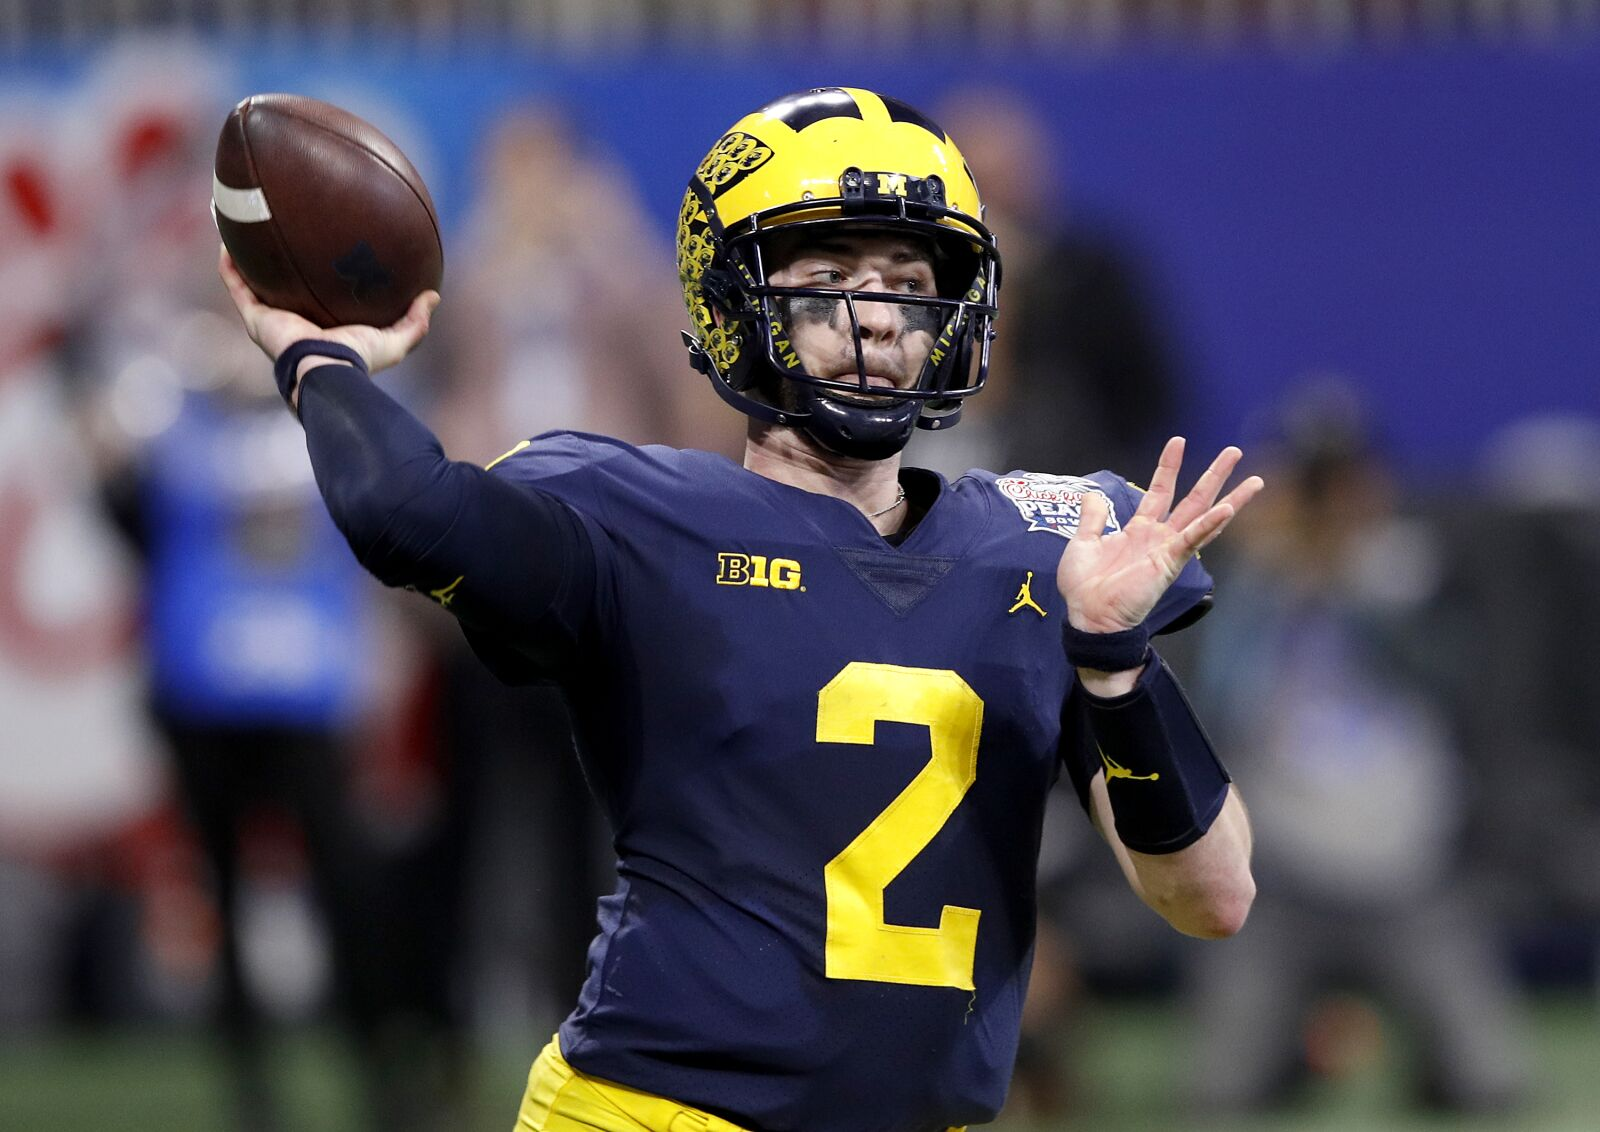 Michigan Football: Shea Patterson needs a short leash in 2019